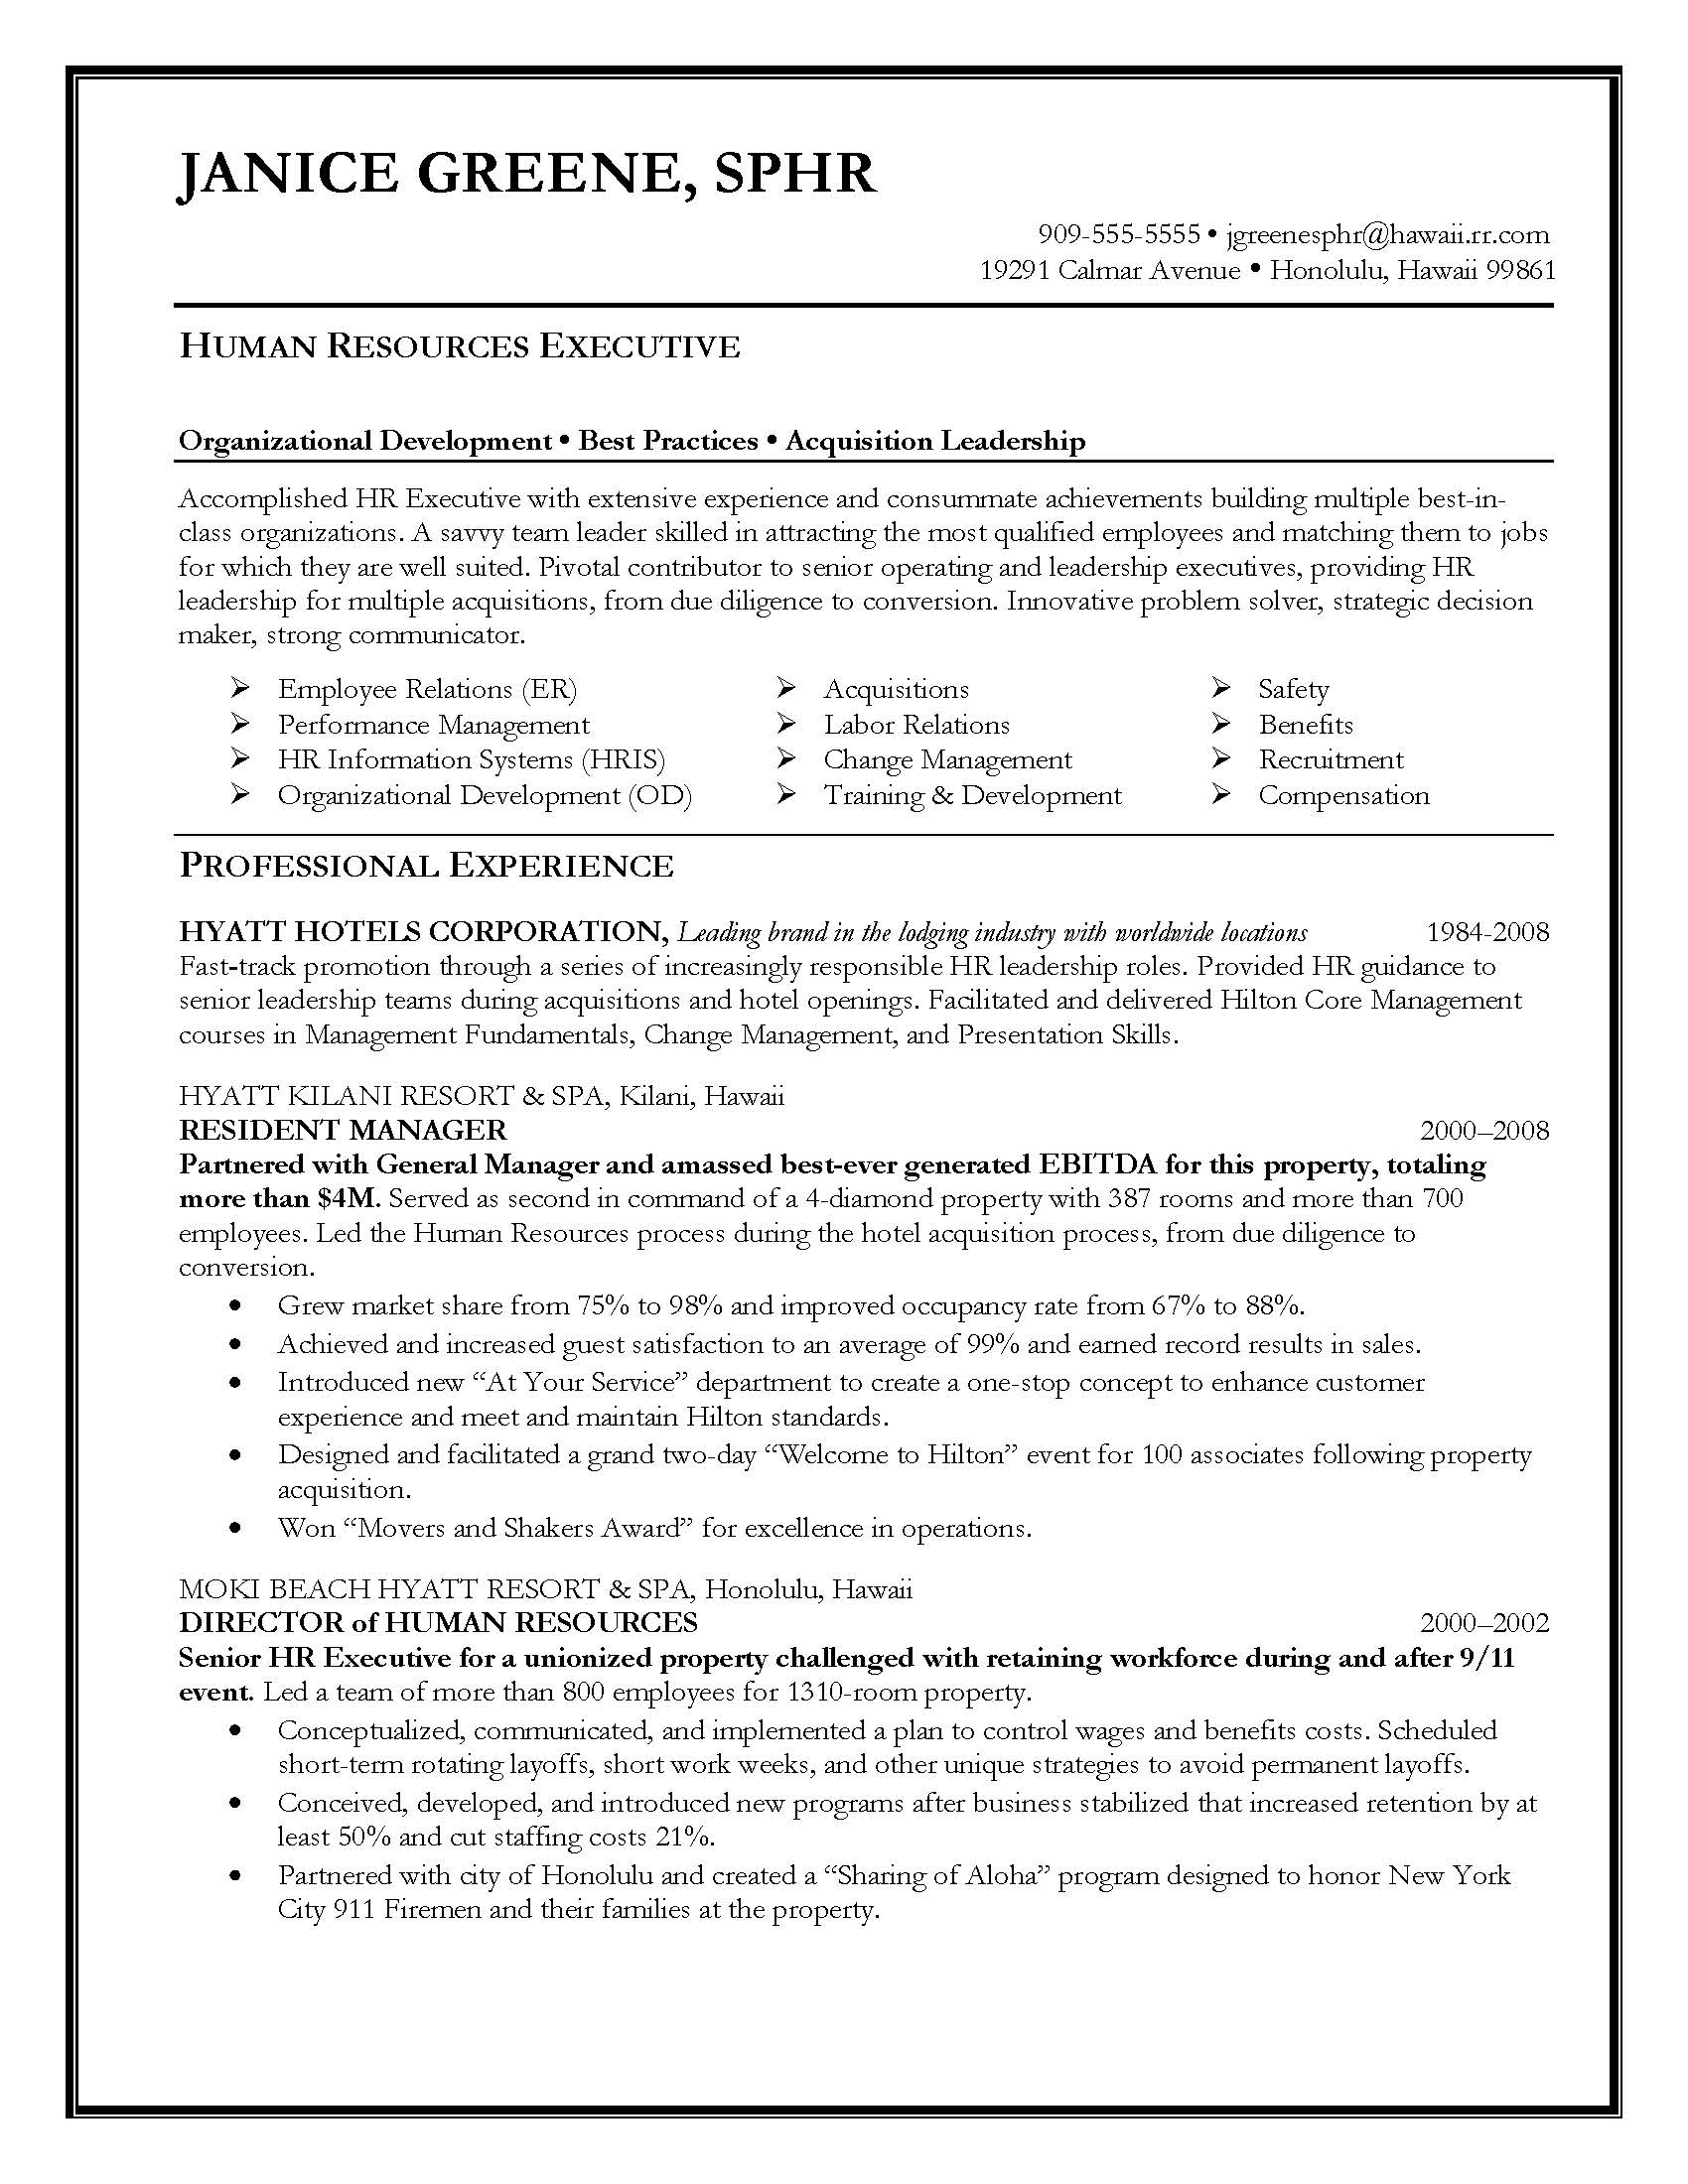 Sample Resume Executive Summary Account Executive Resume Sample Sample Resume Executive Summary Account Executive Resume     Resume Resource